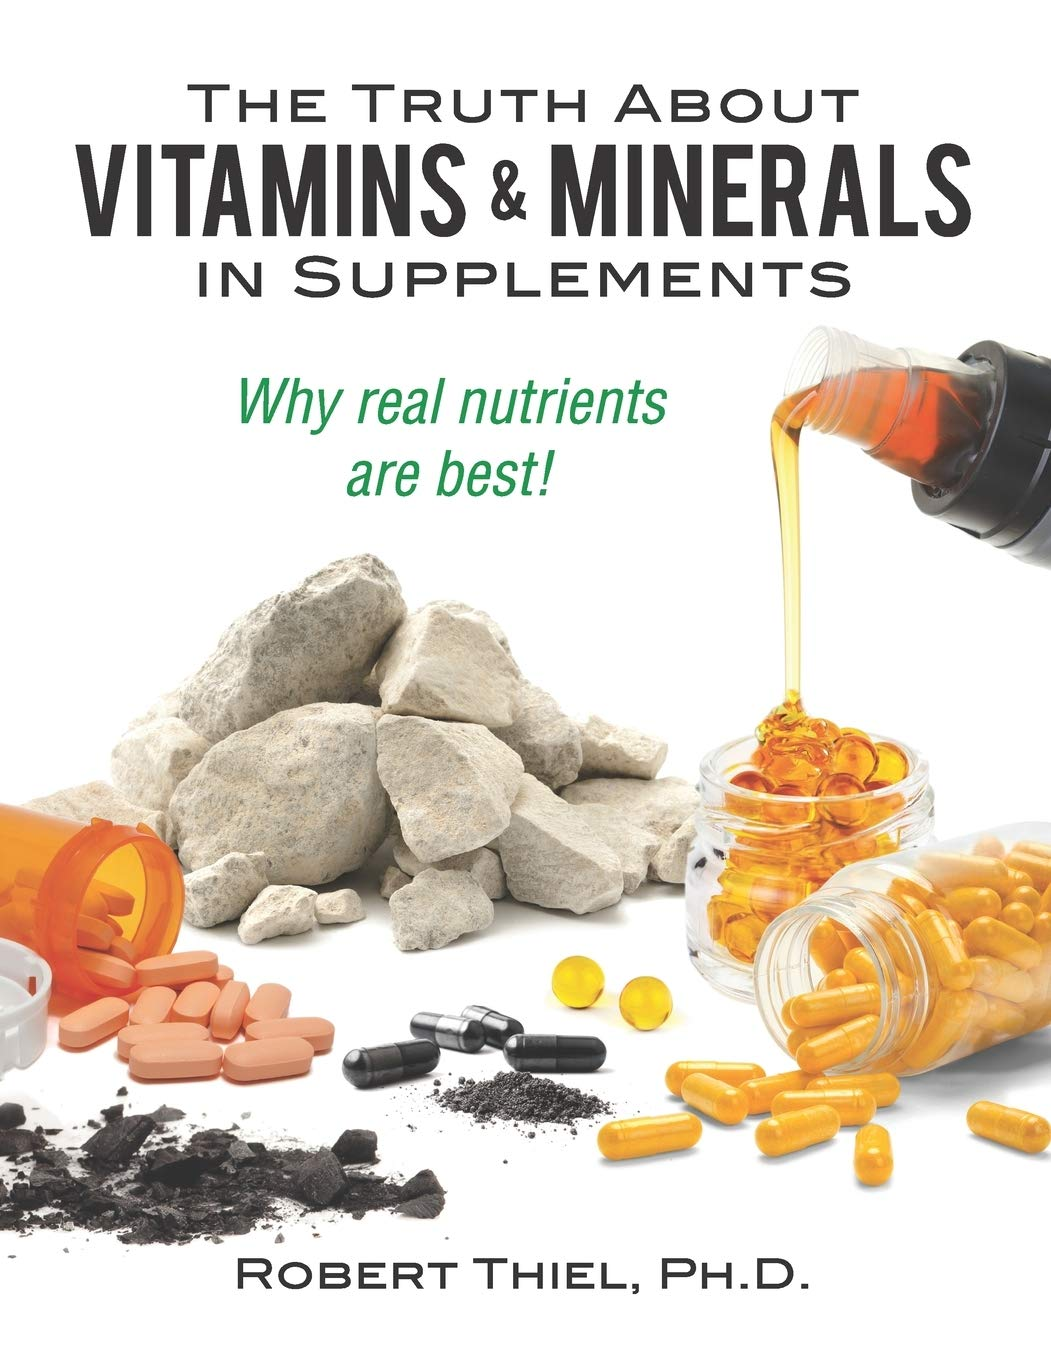 Truth about Vitamins and Minerals in Supplements: Why real nutrients are best